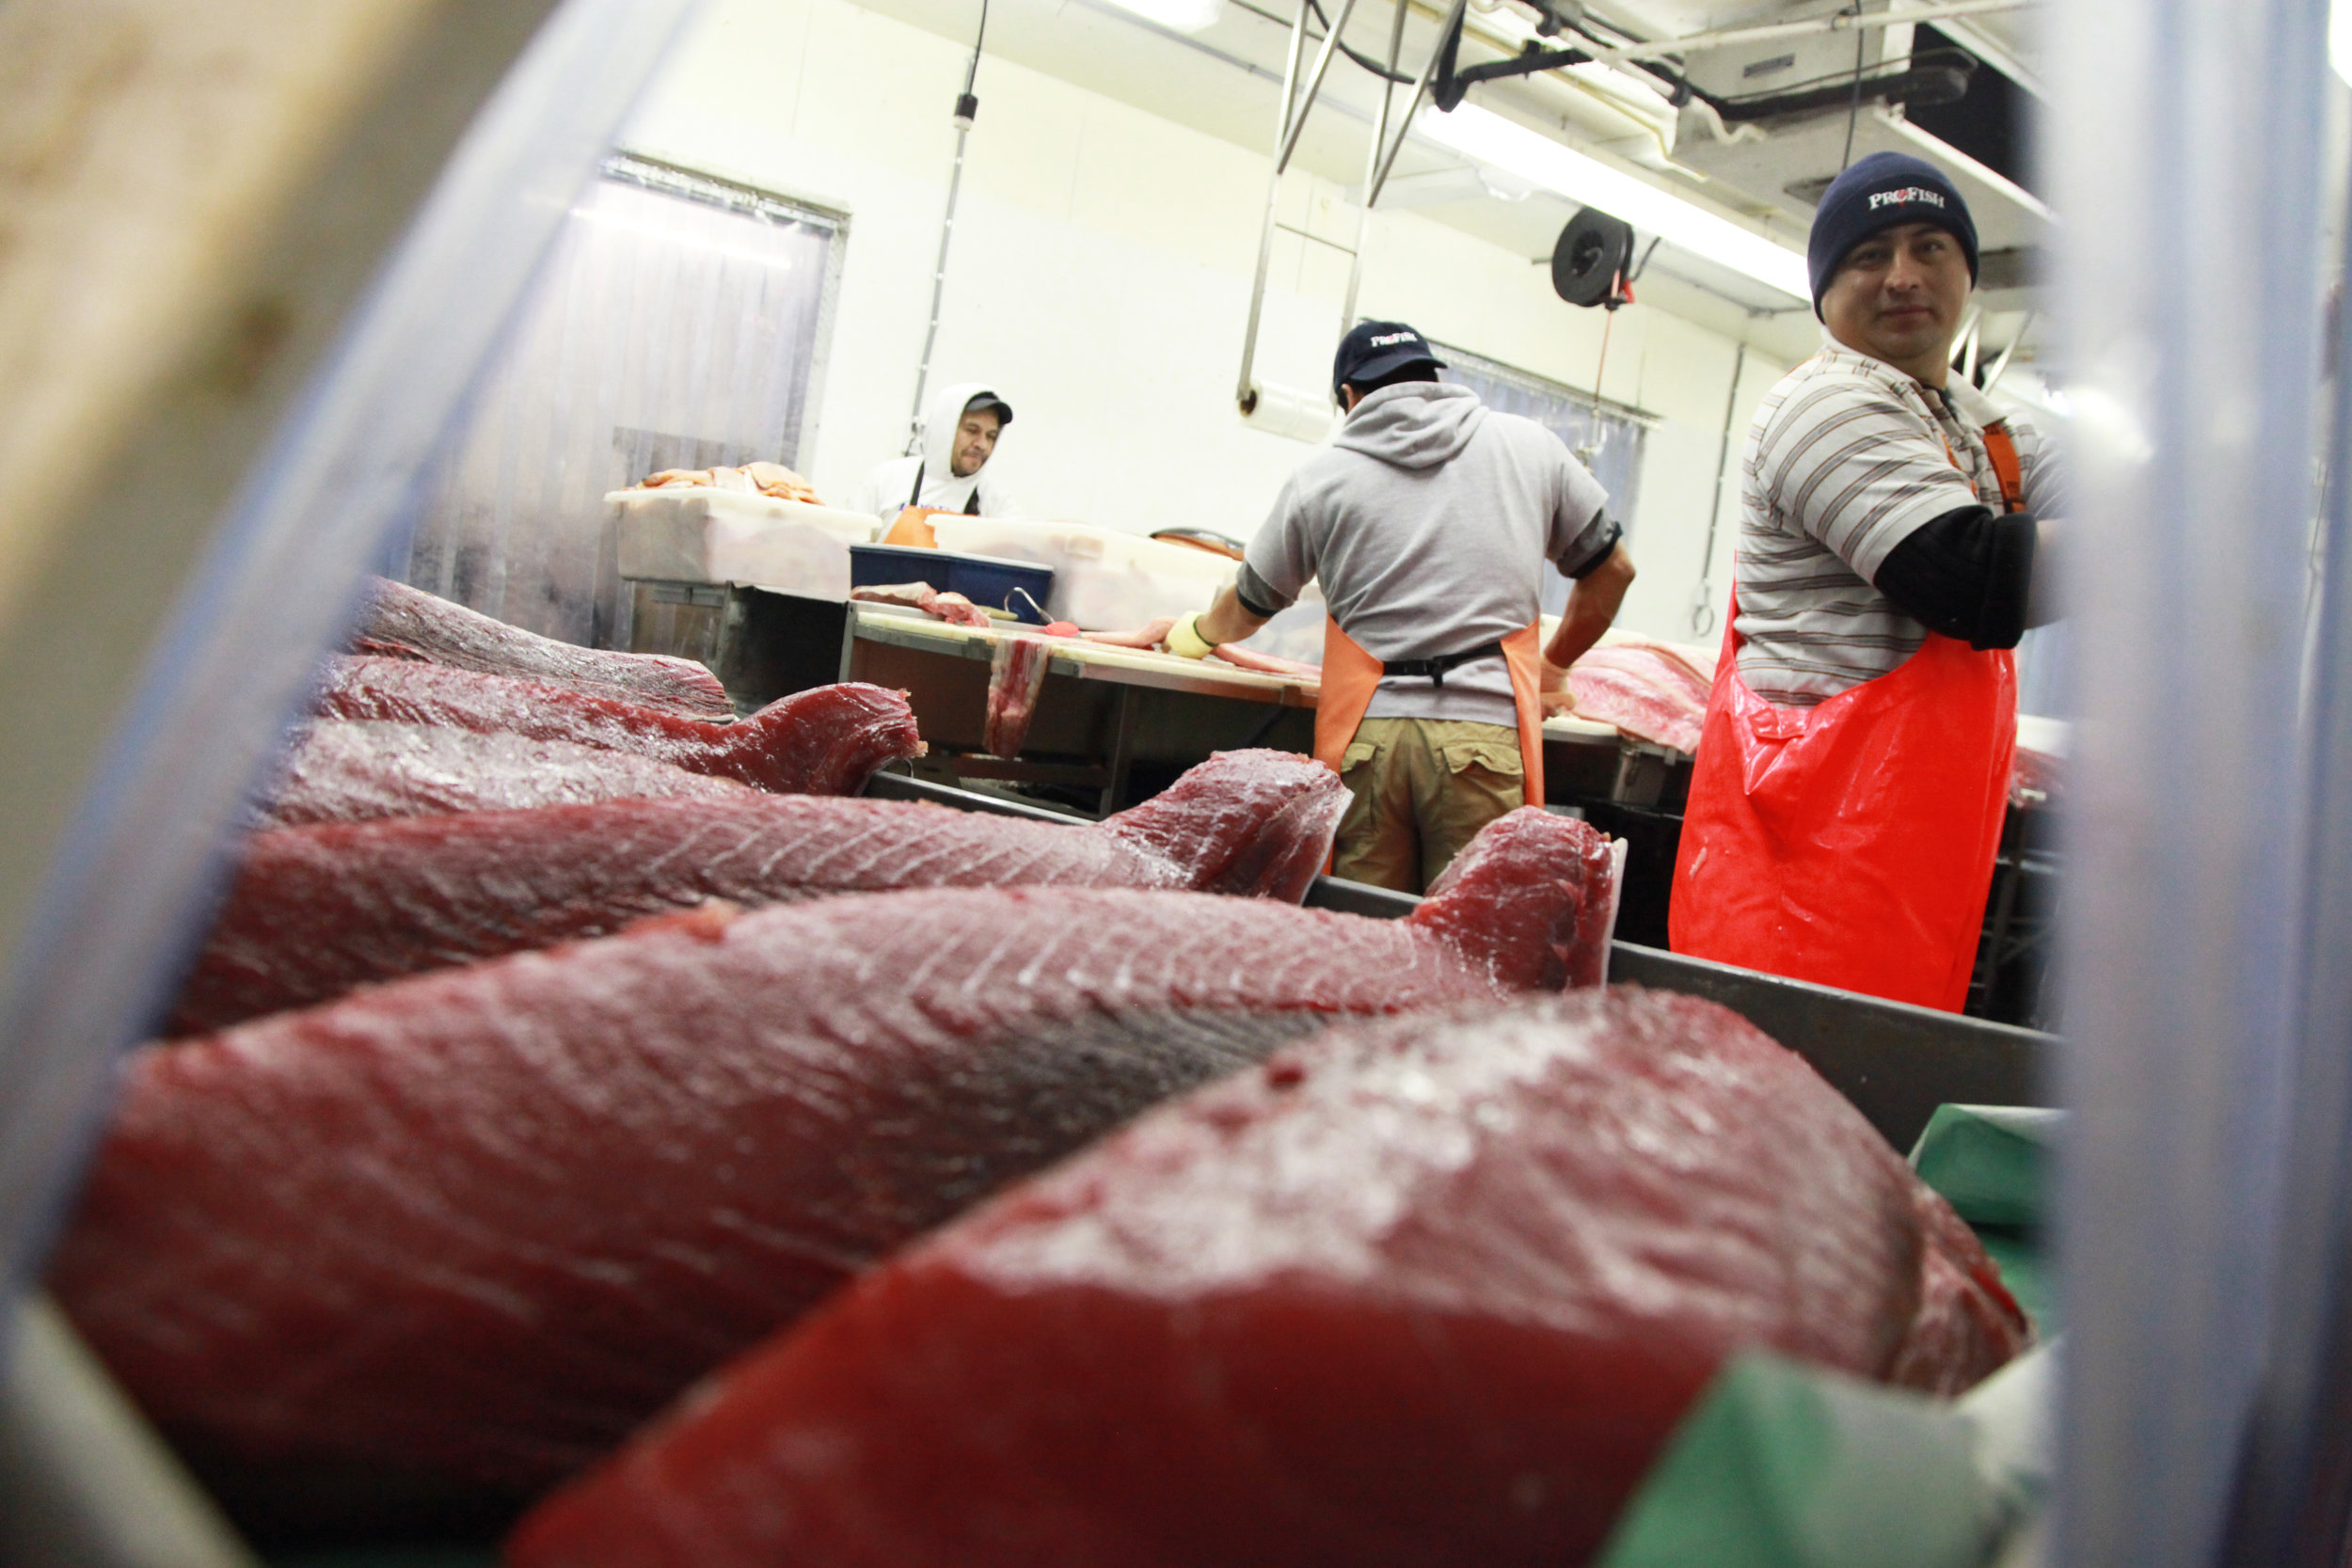 A worker takes a glimpse of the fresh tuna fillets in the fish factory owned by ProFish Ltd., in Washington, D.C., on Dec. 7, 2015. ProFish is one of the largest seafood wholesalers in Washington.